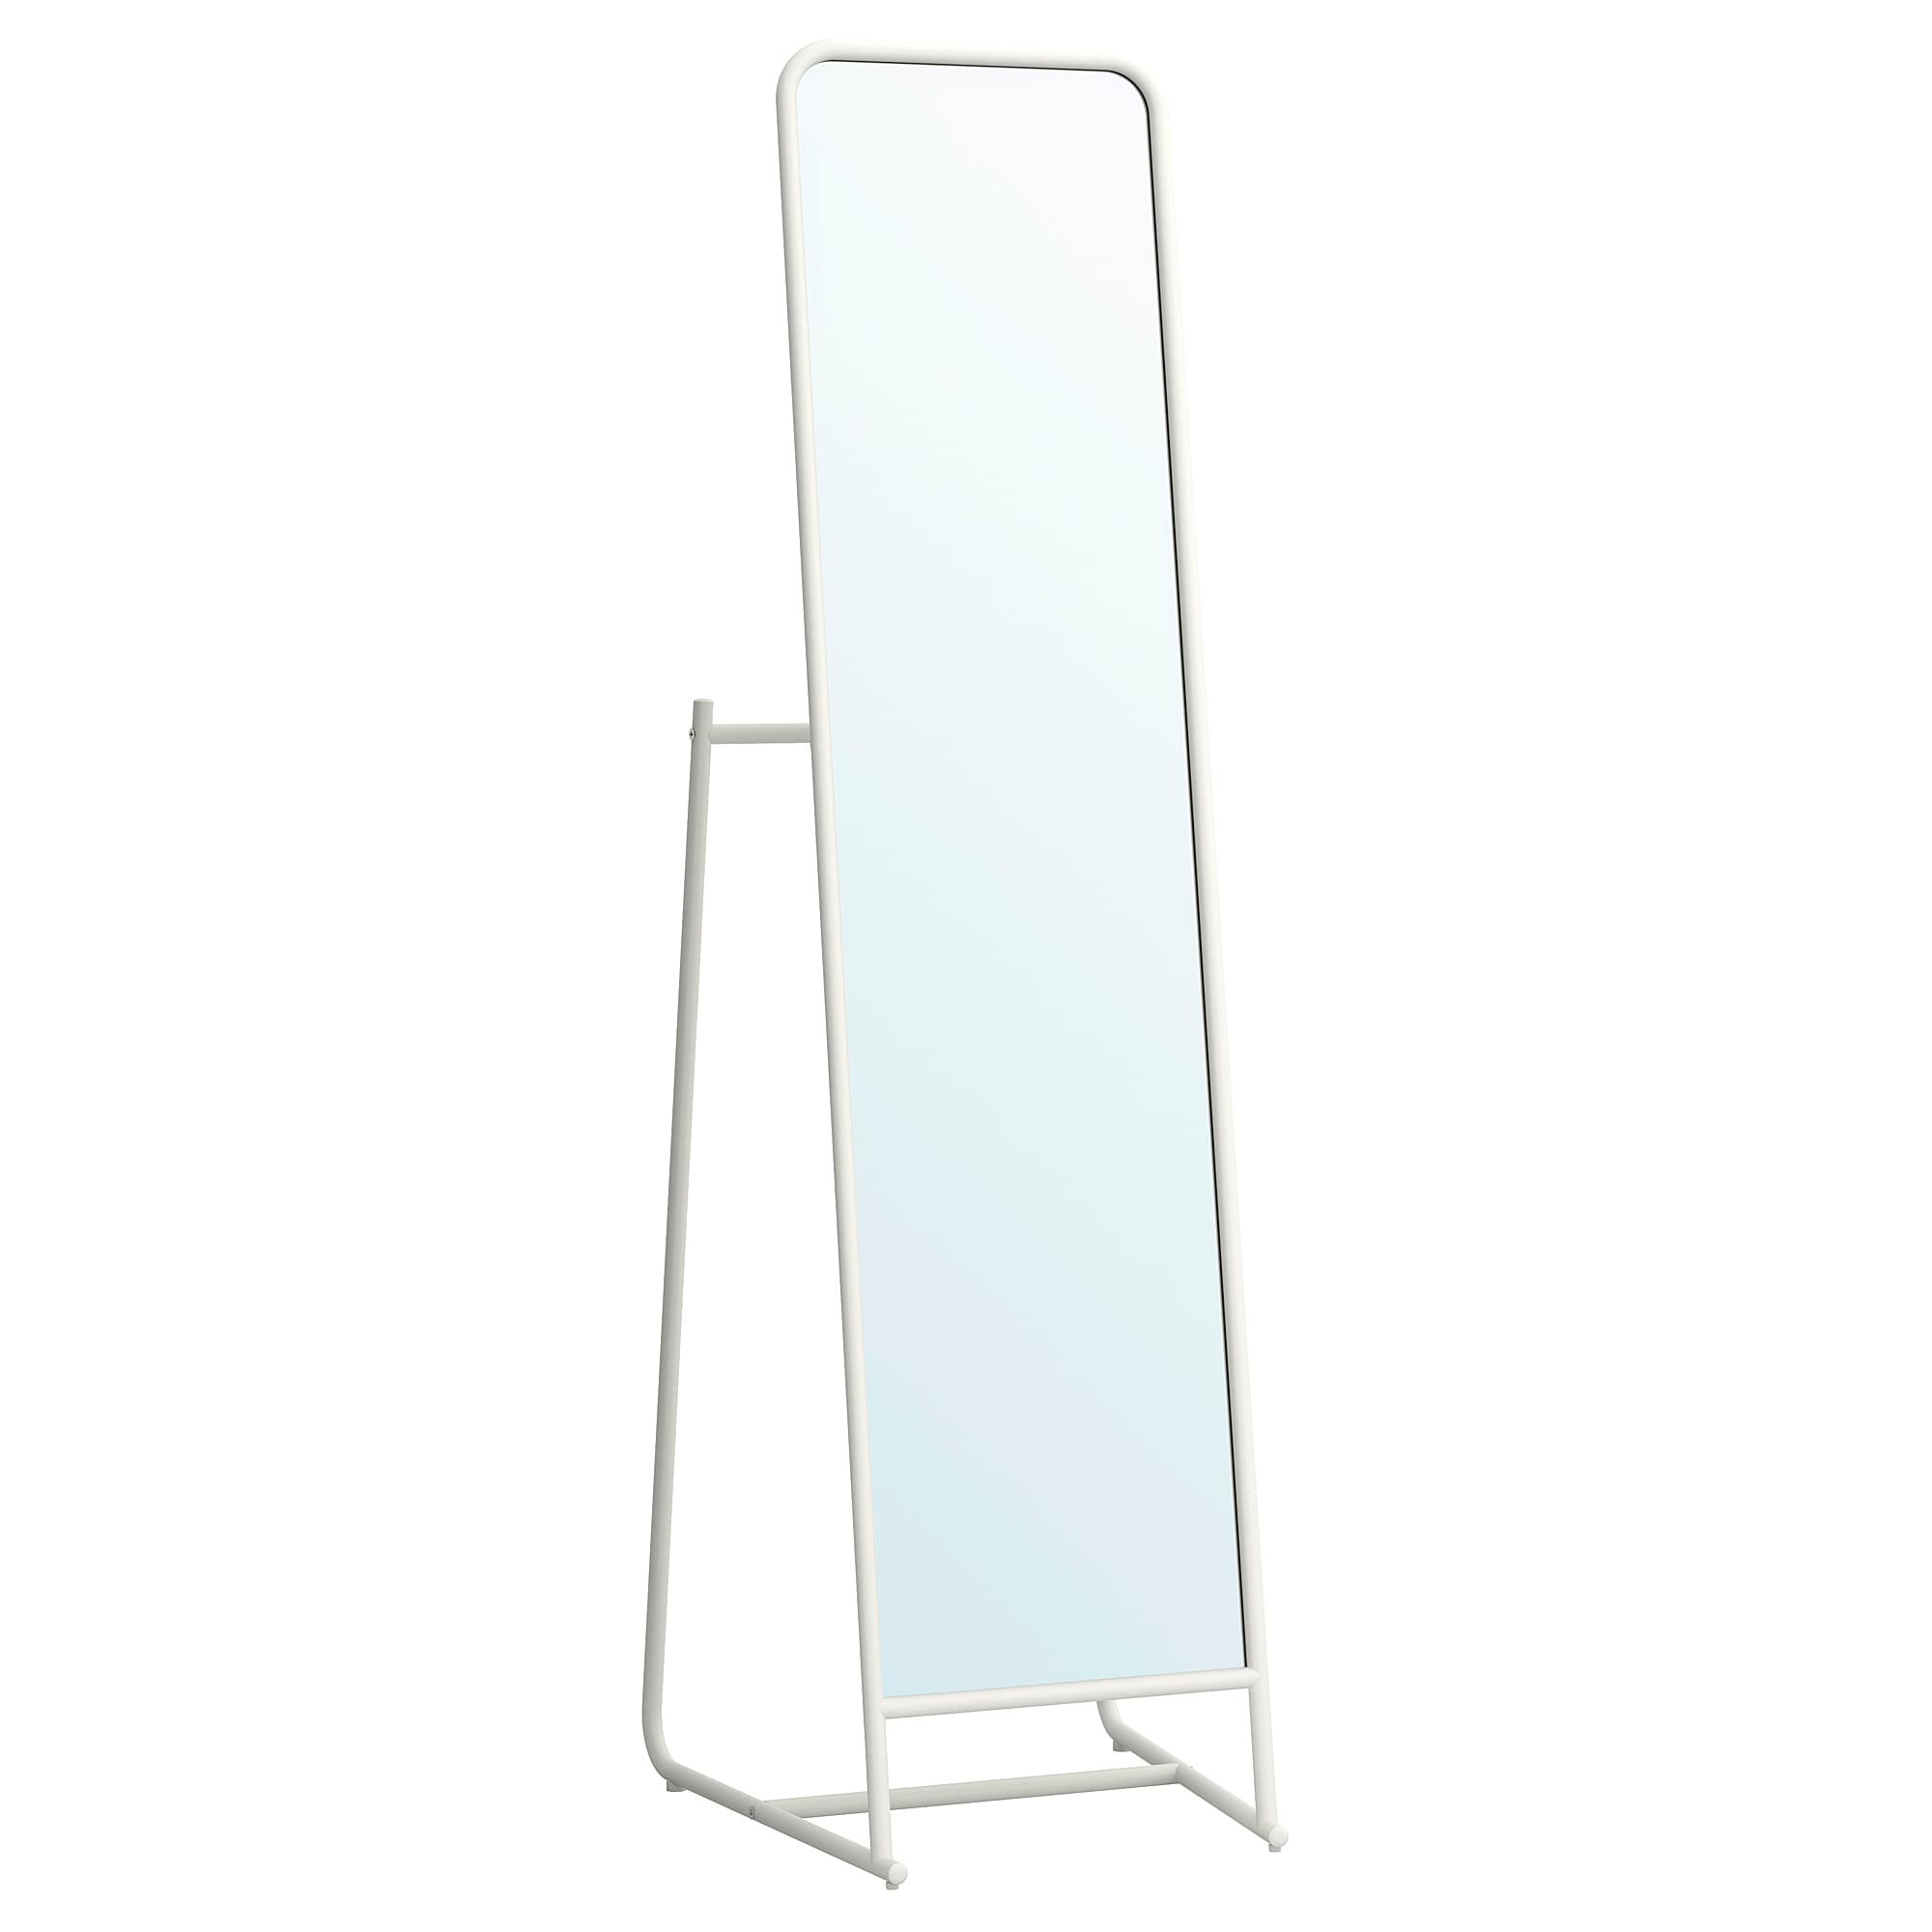 Stand Up Wall Mirrors For Most Popular Ikea Knapper White Floor Mirror In (View 11 of 20)